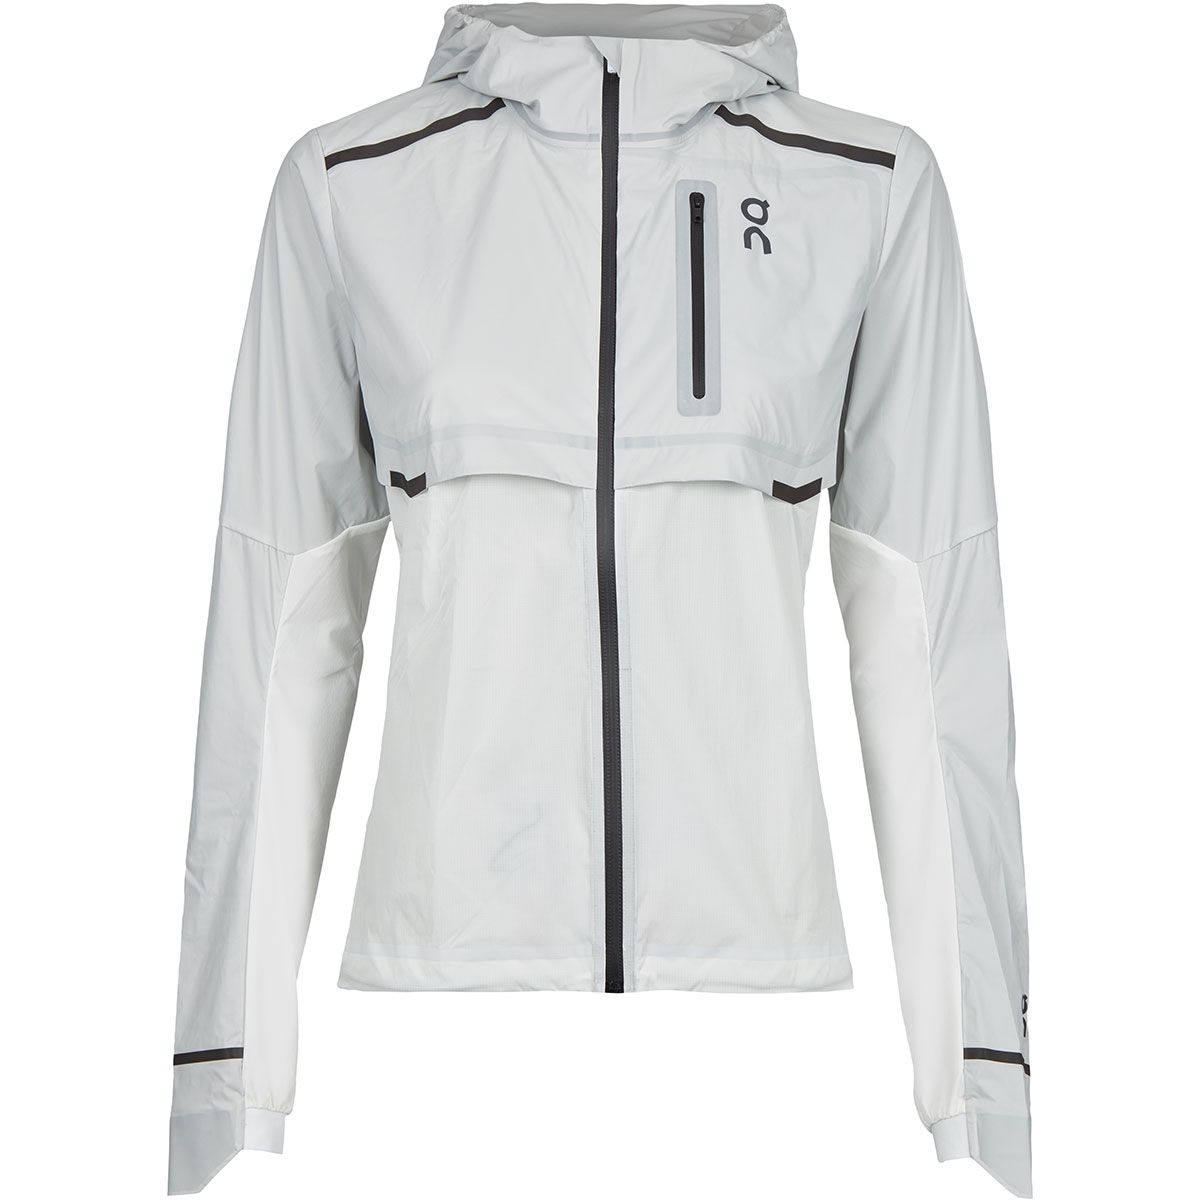 ON Running Damen Weather Jacke (Größe XS, Weiß) | Windbreaker > Damen